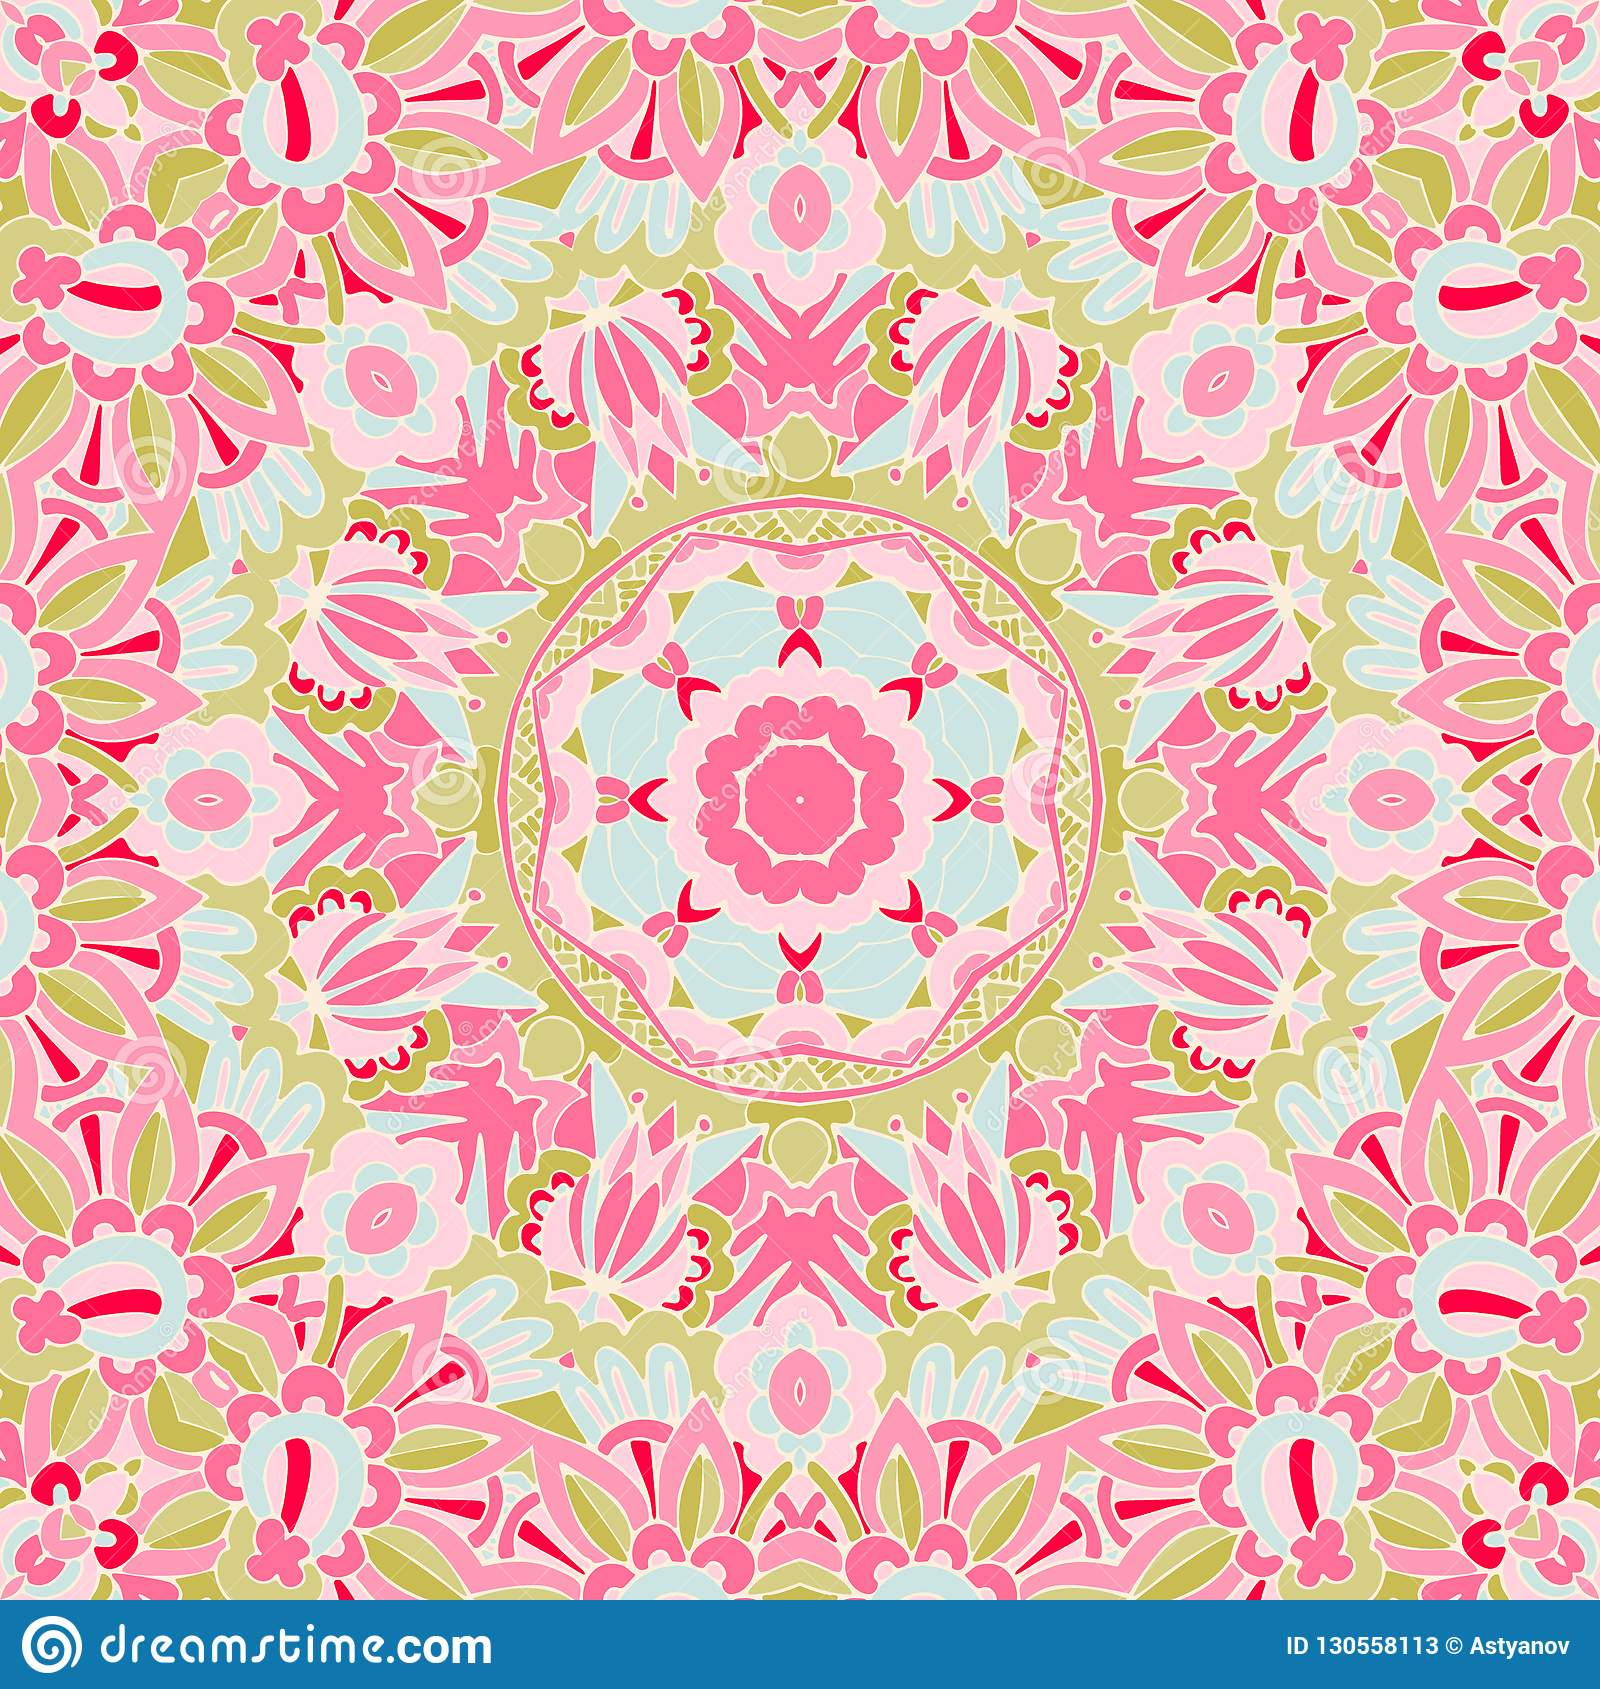 Seamless Pink Floral Background With Abstract Fantasy Flowers